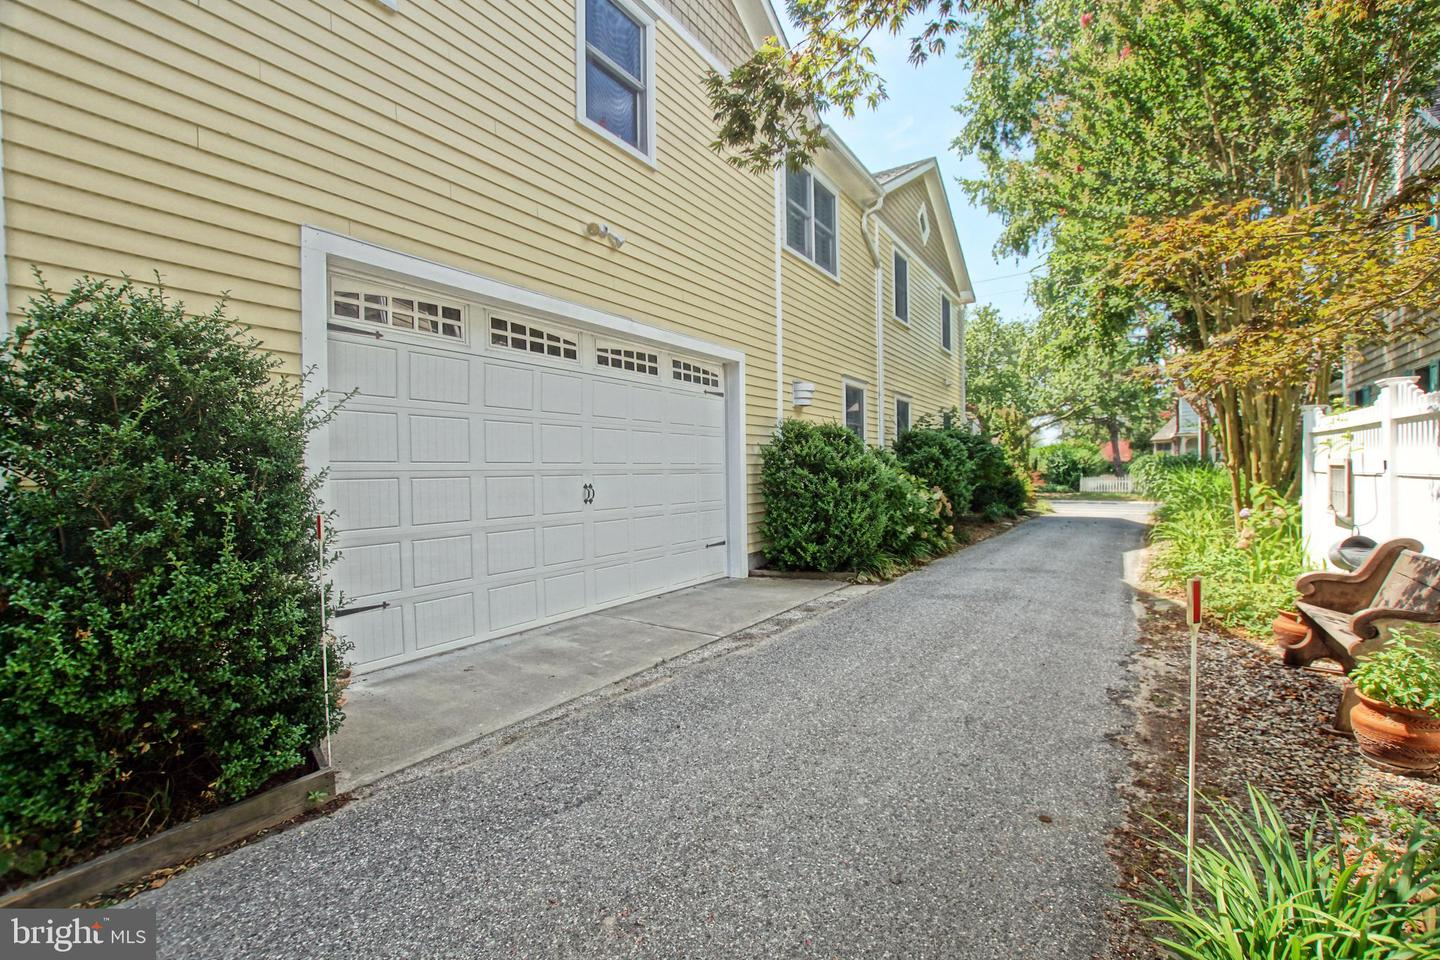 DESU165588-304225349062-2020-07-28-17-13-23 423 W 3rd St | Lewes, DE Real Estate For Sale | MLS# Desu165588  - Lee Ann Group